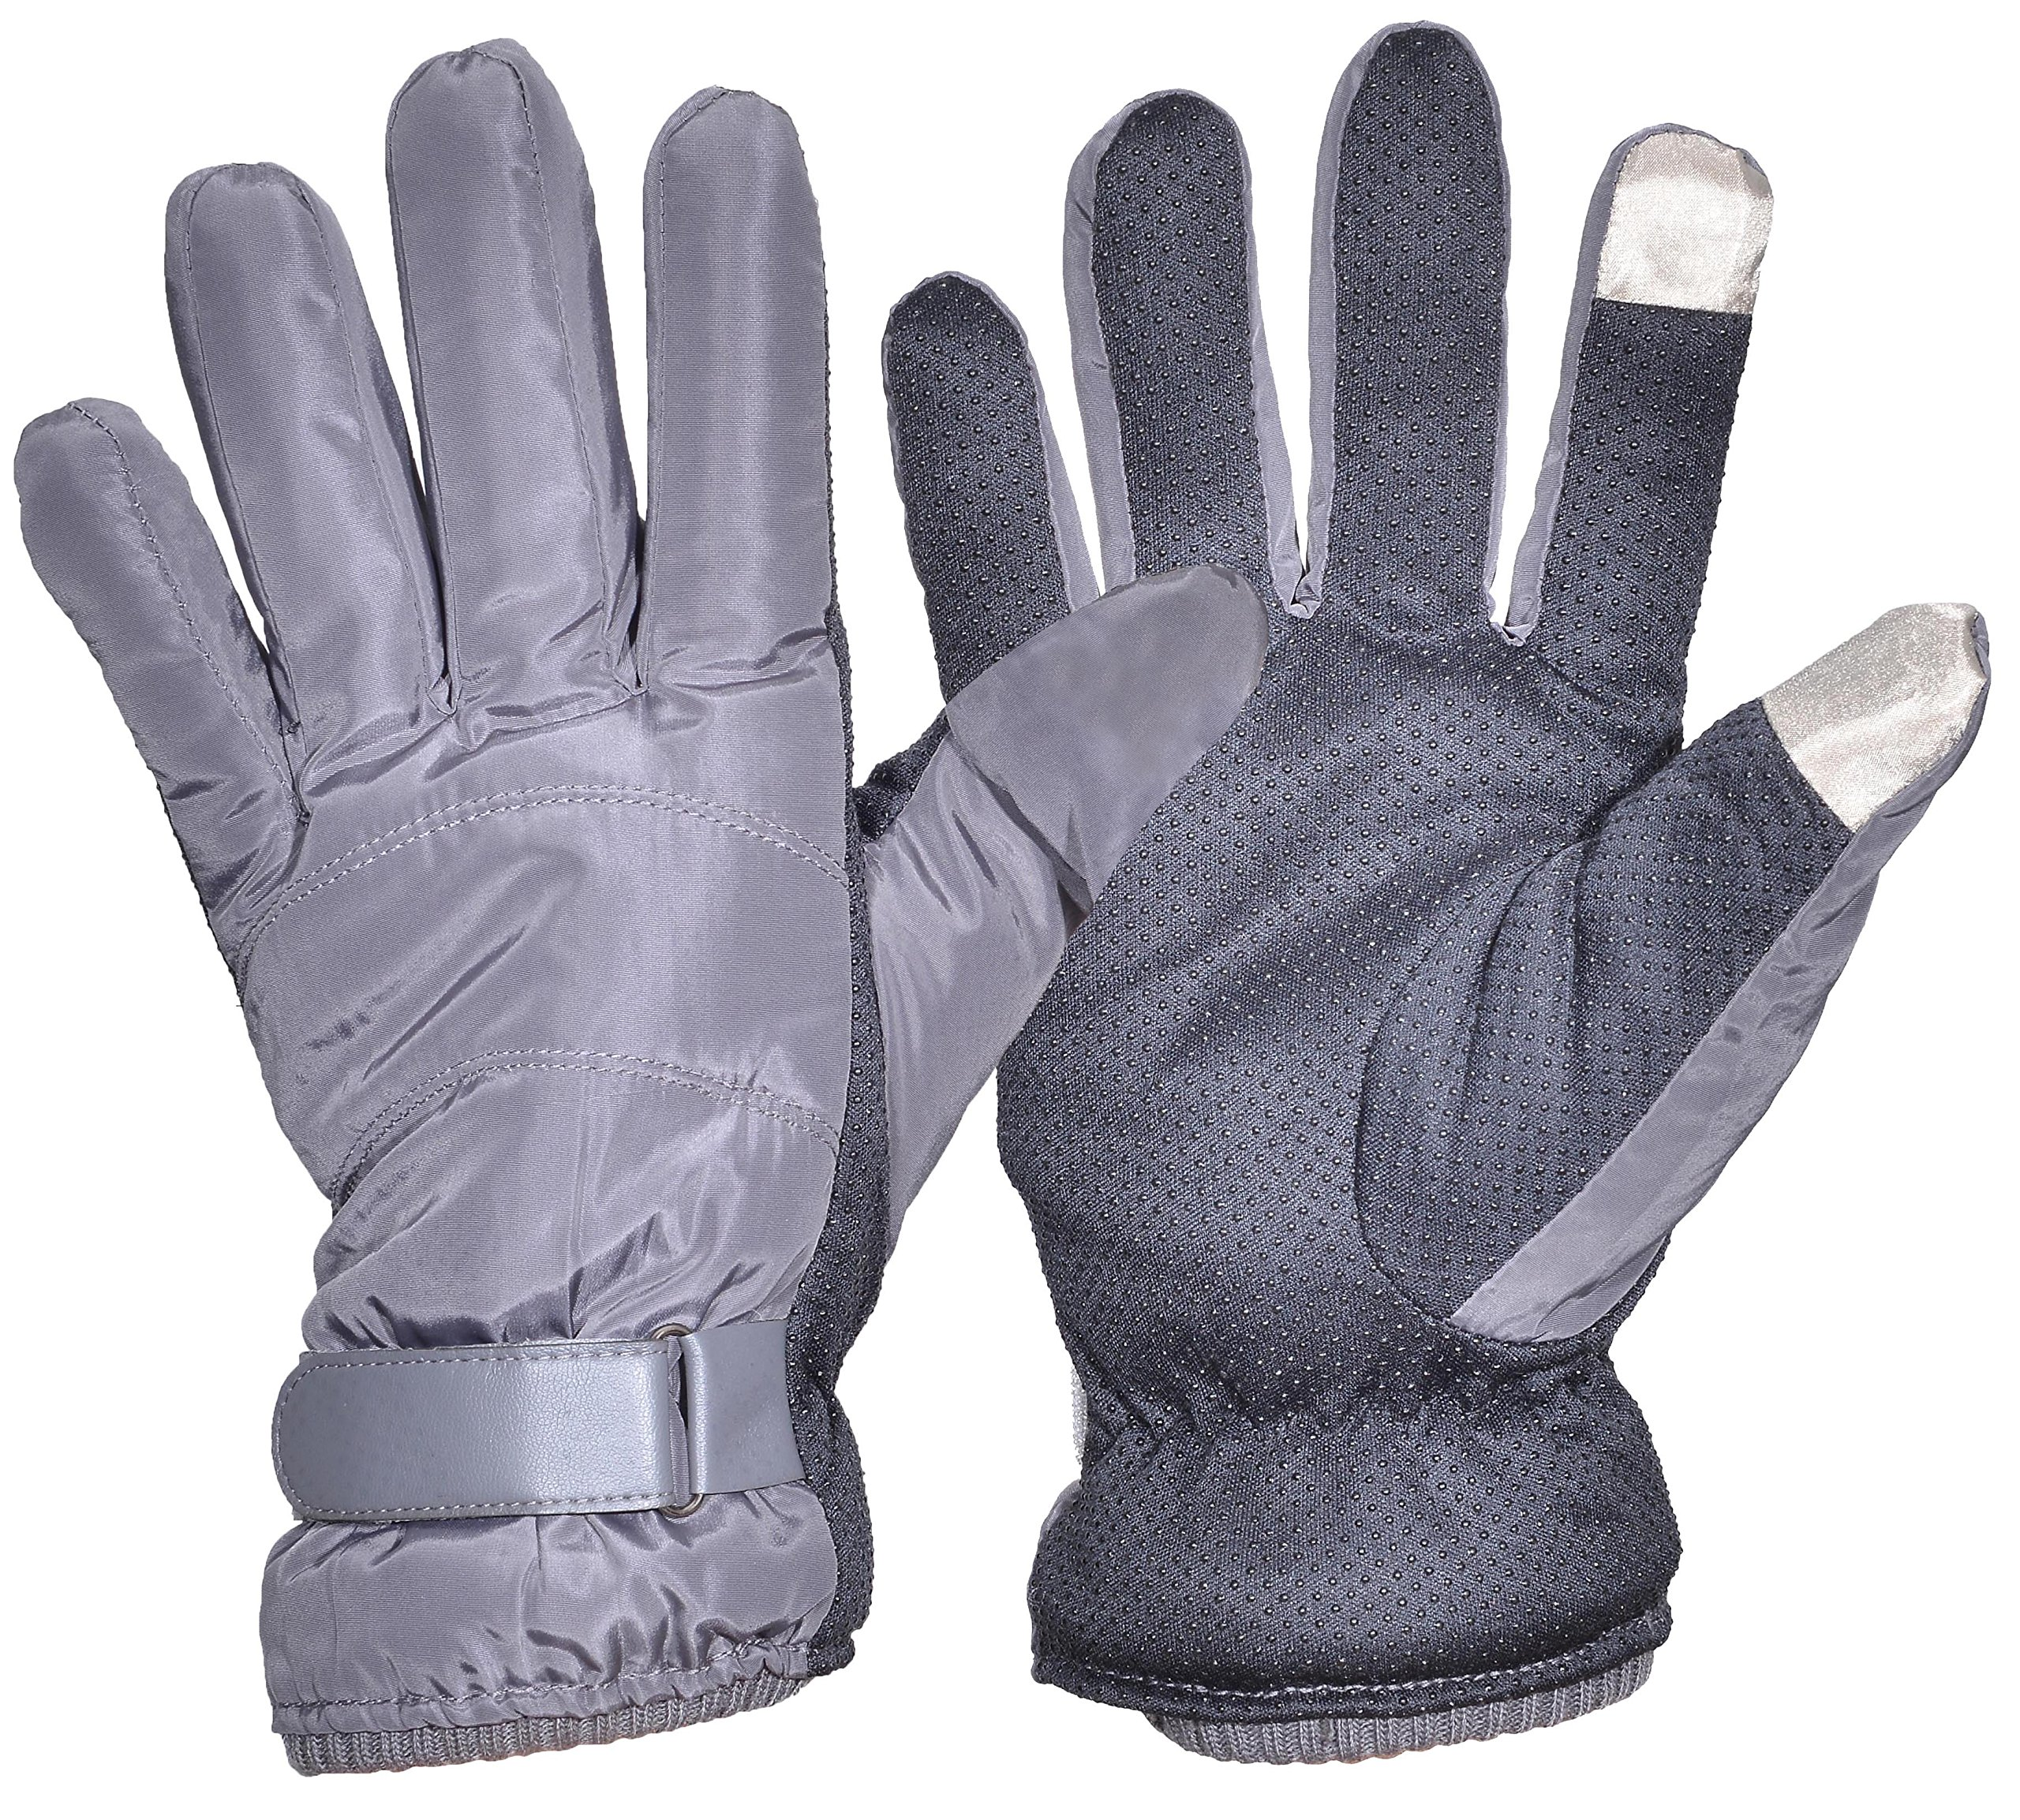 Outrip Men's Driving Gloves Winter Warm Touch Screen Fleece Lined Cycling Gloves (Gray)